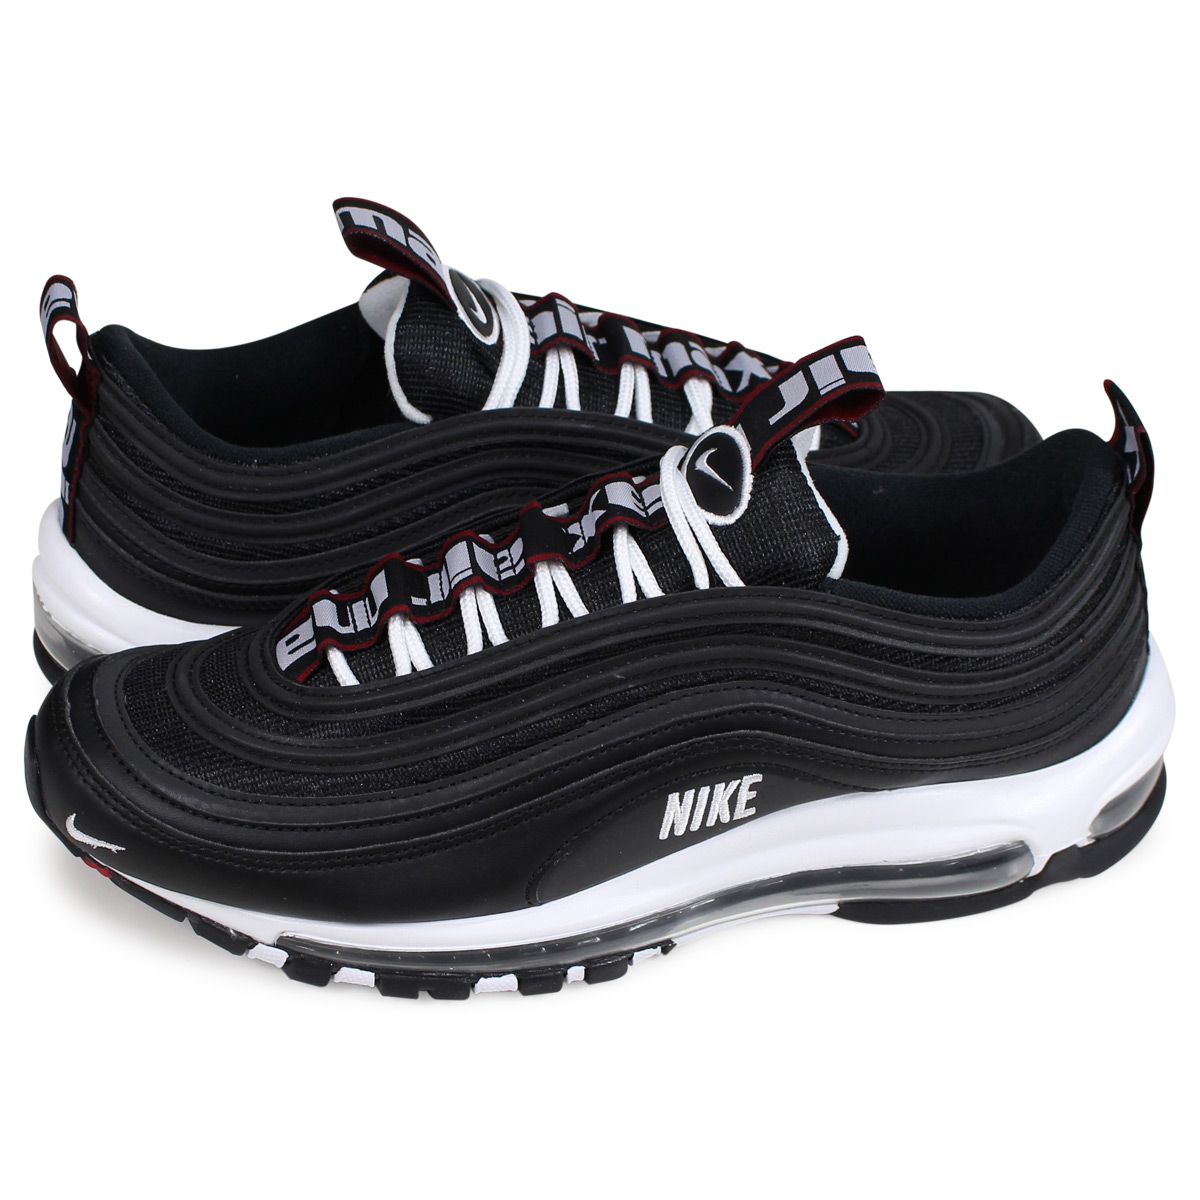 finest selection 2e332 e7939 Nike NIKE Air Max 97 sneakers men AIR MAX 97 PREMIUM black 312,834-008  [load planned Shinnyu load in reservation product 11/22 containing] [1811]